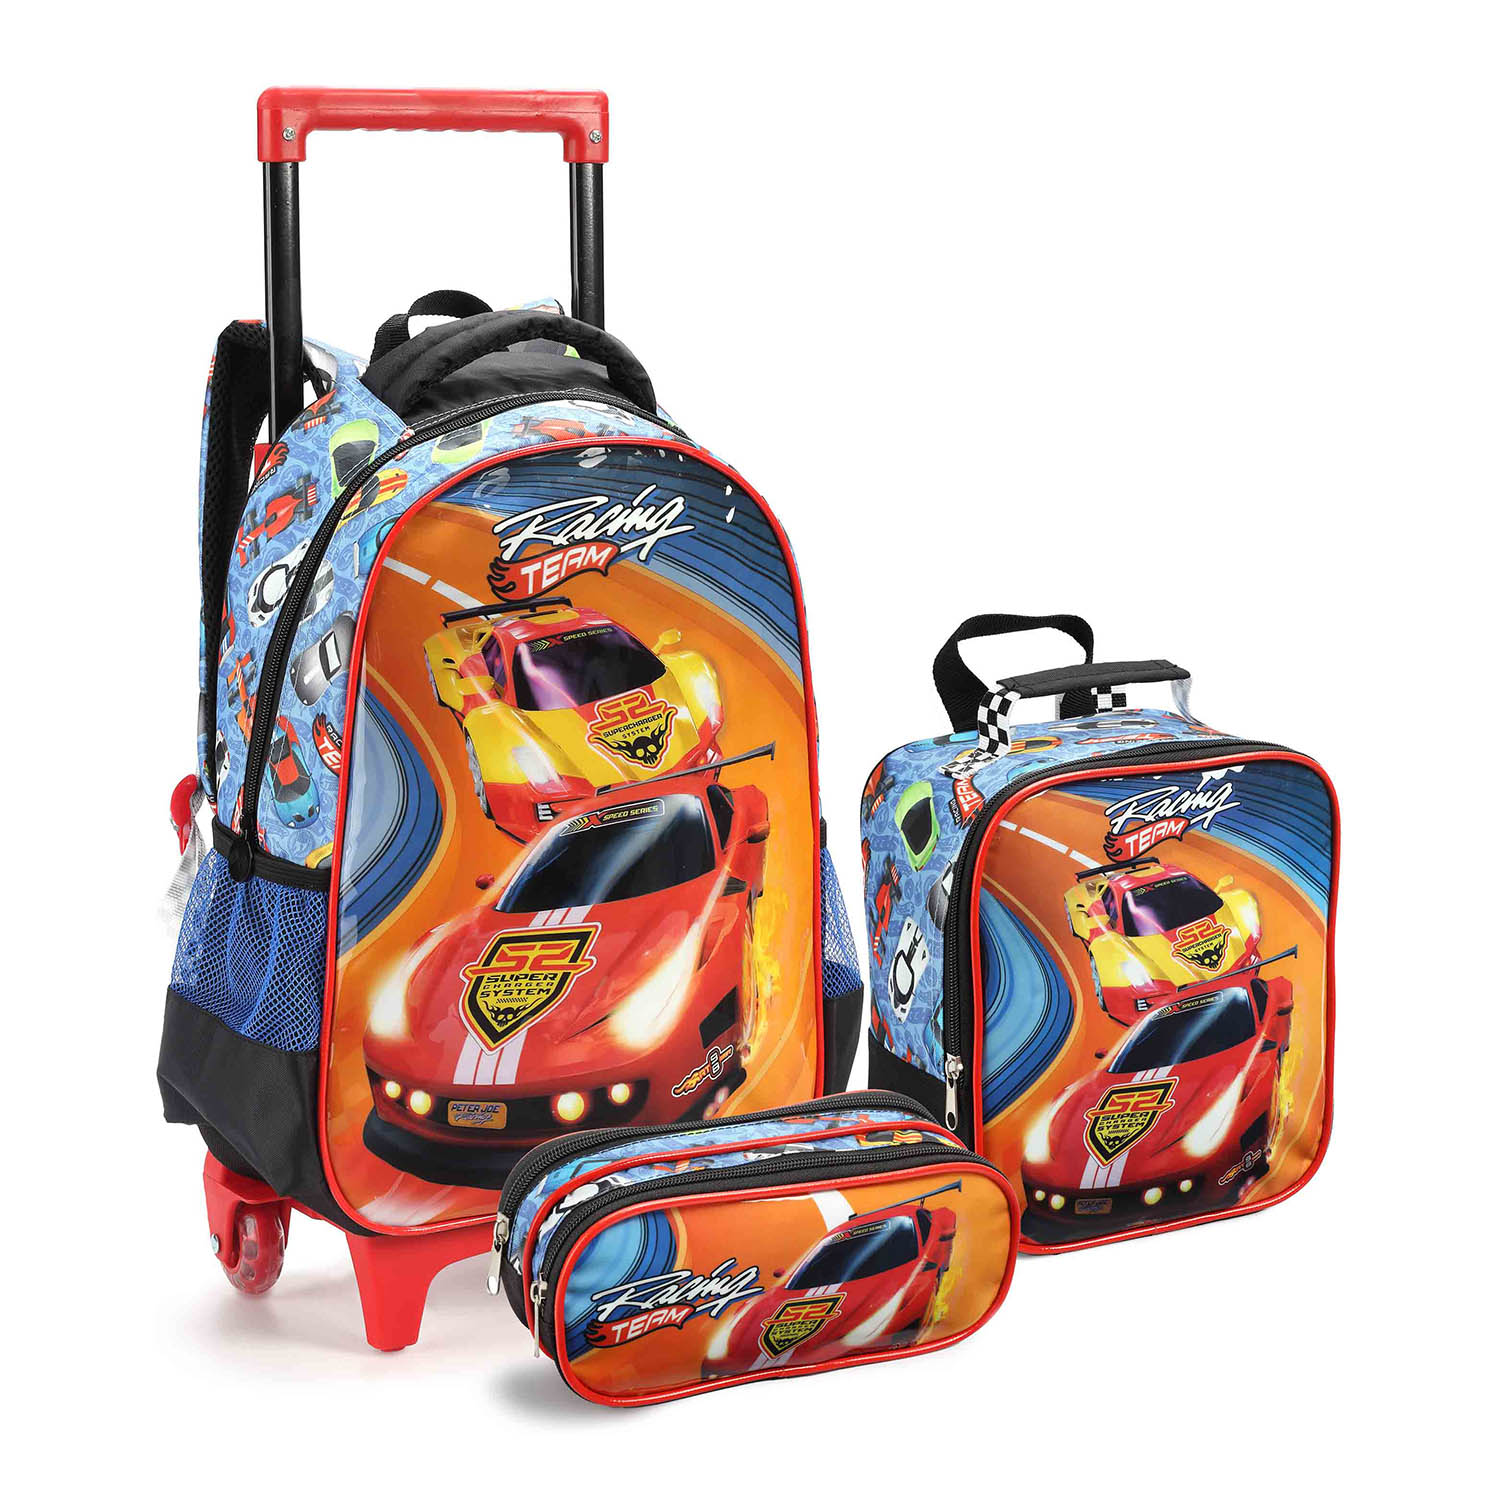 KIT ESCOLAR MASCULINO CARROS - SEANITE